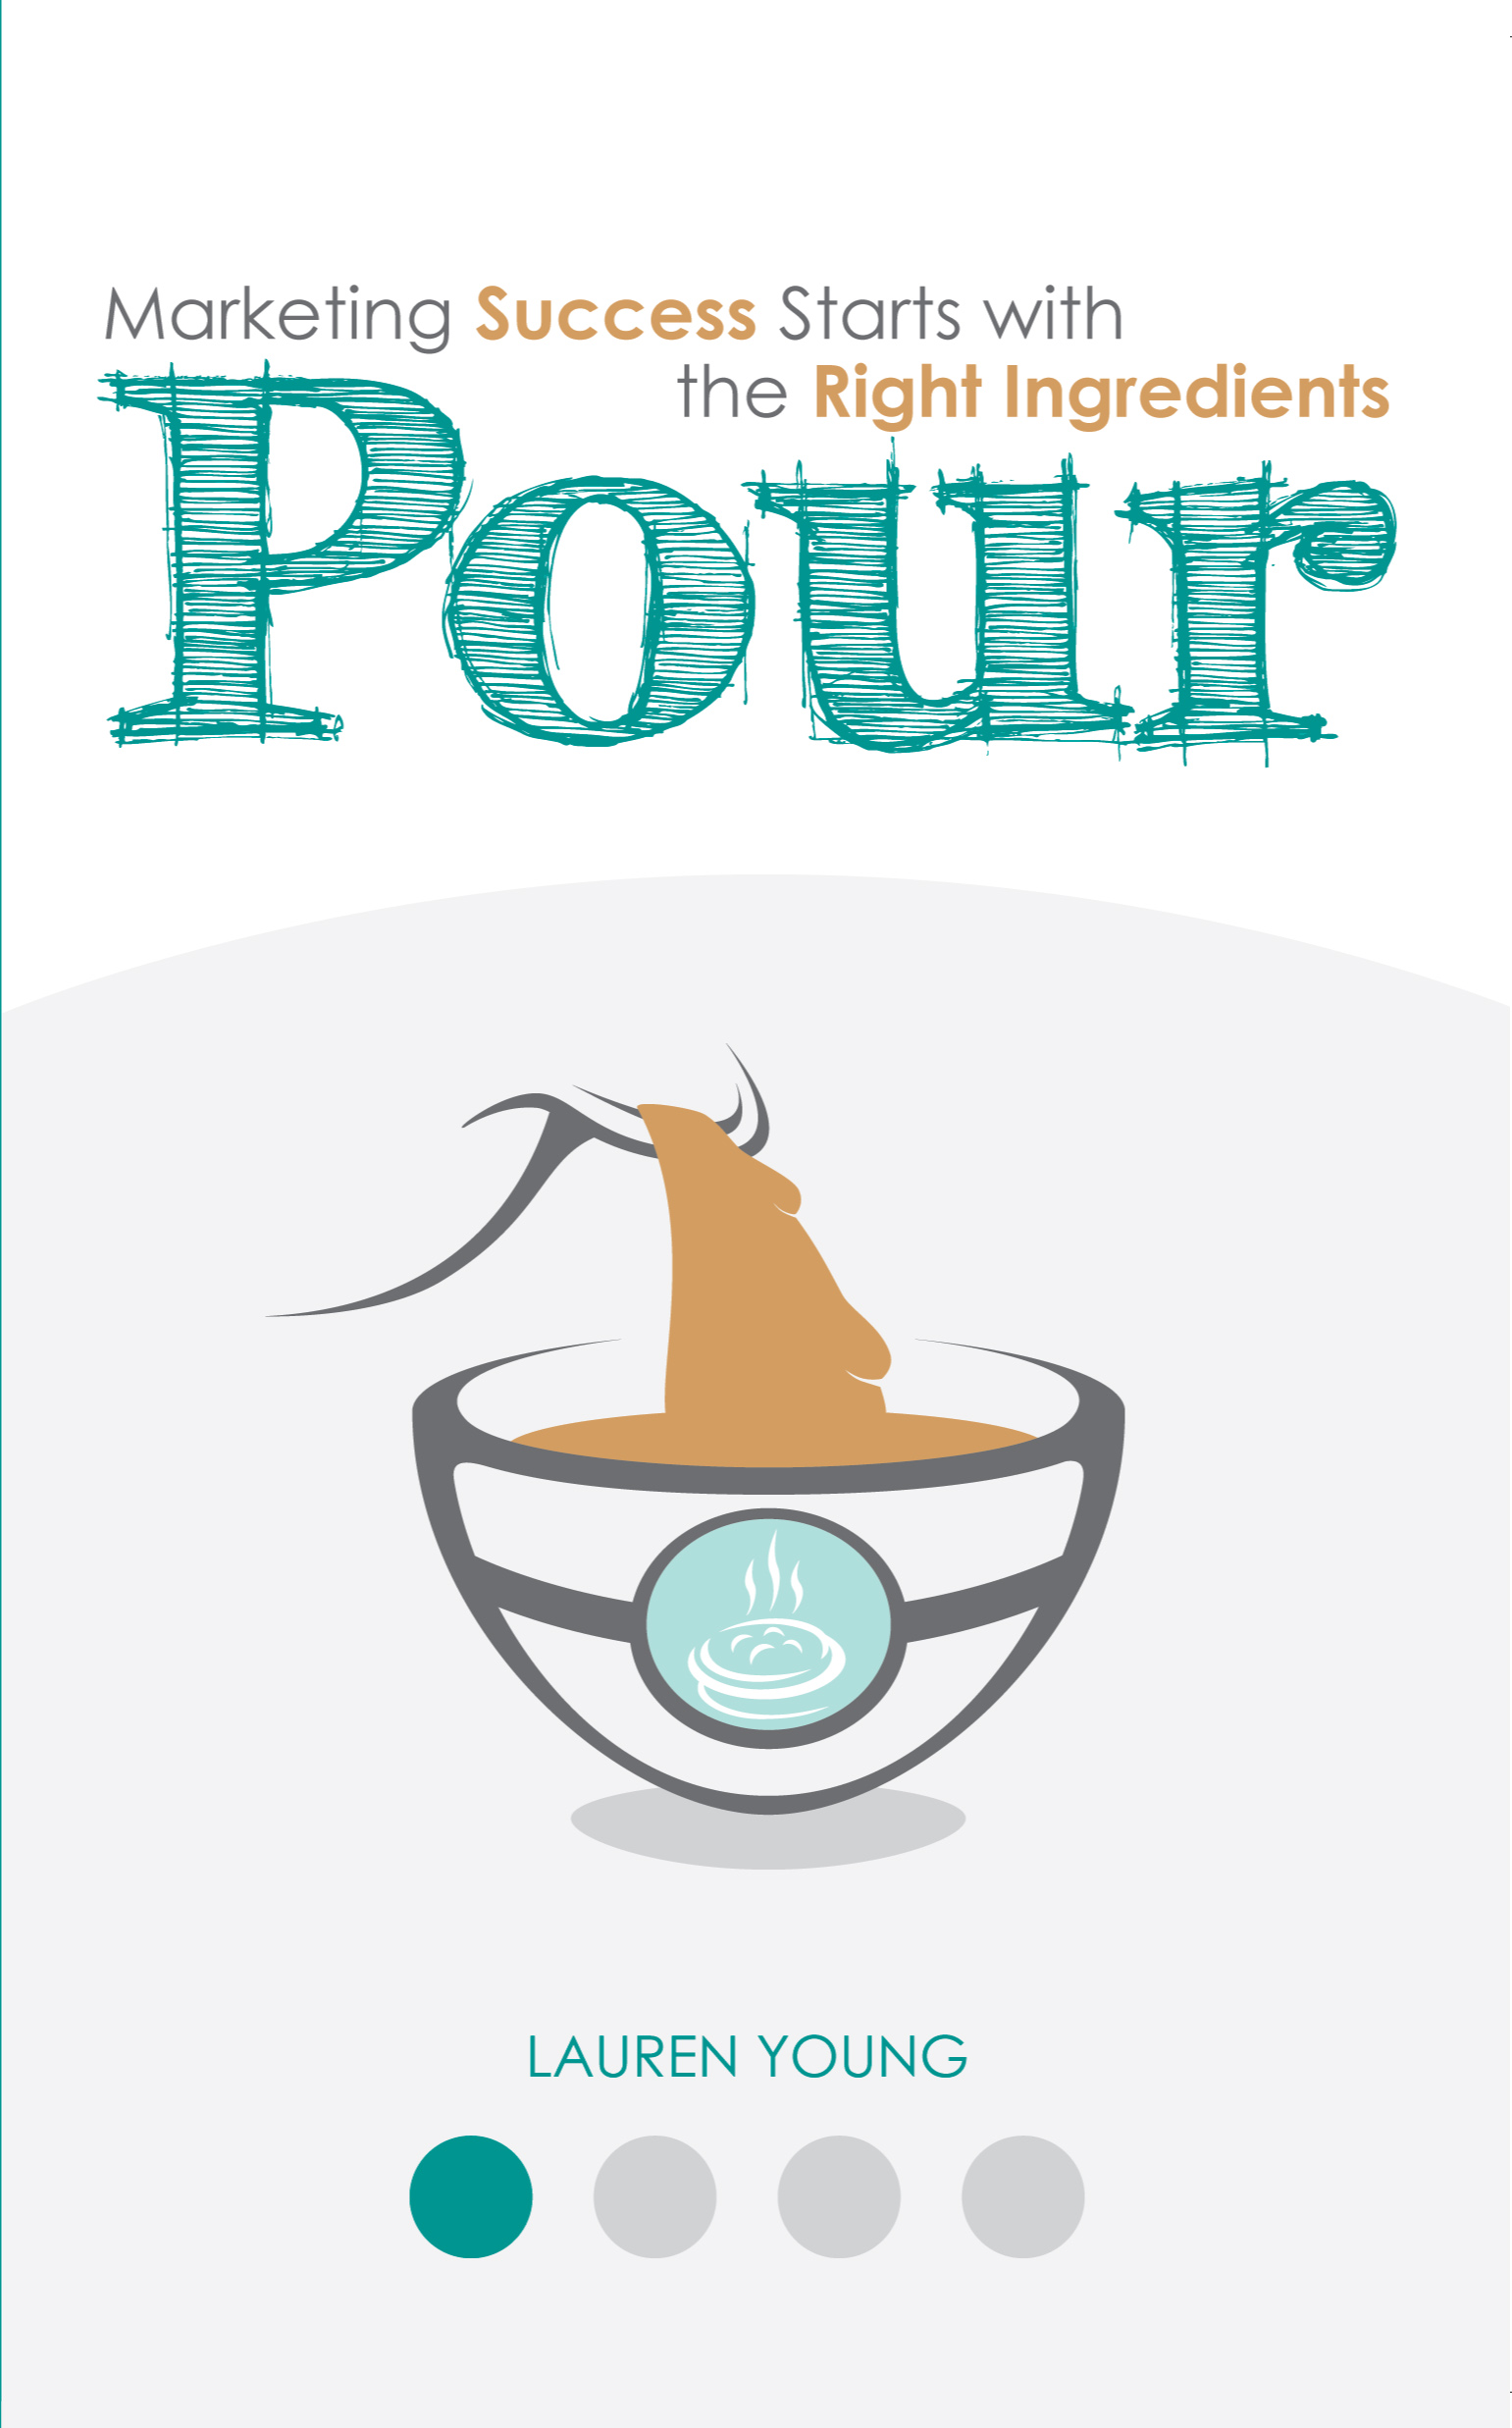 Pour: Marketing Success Starts with the Right Ingredients